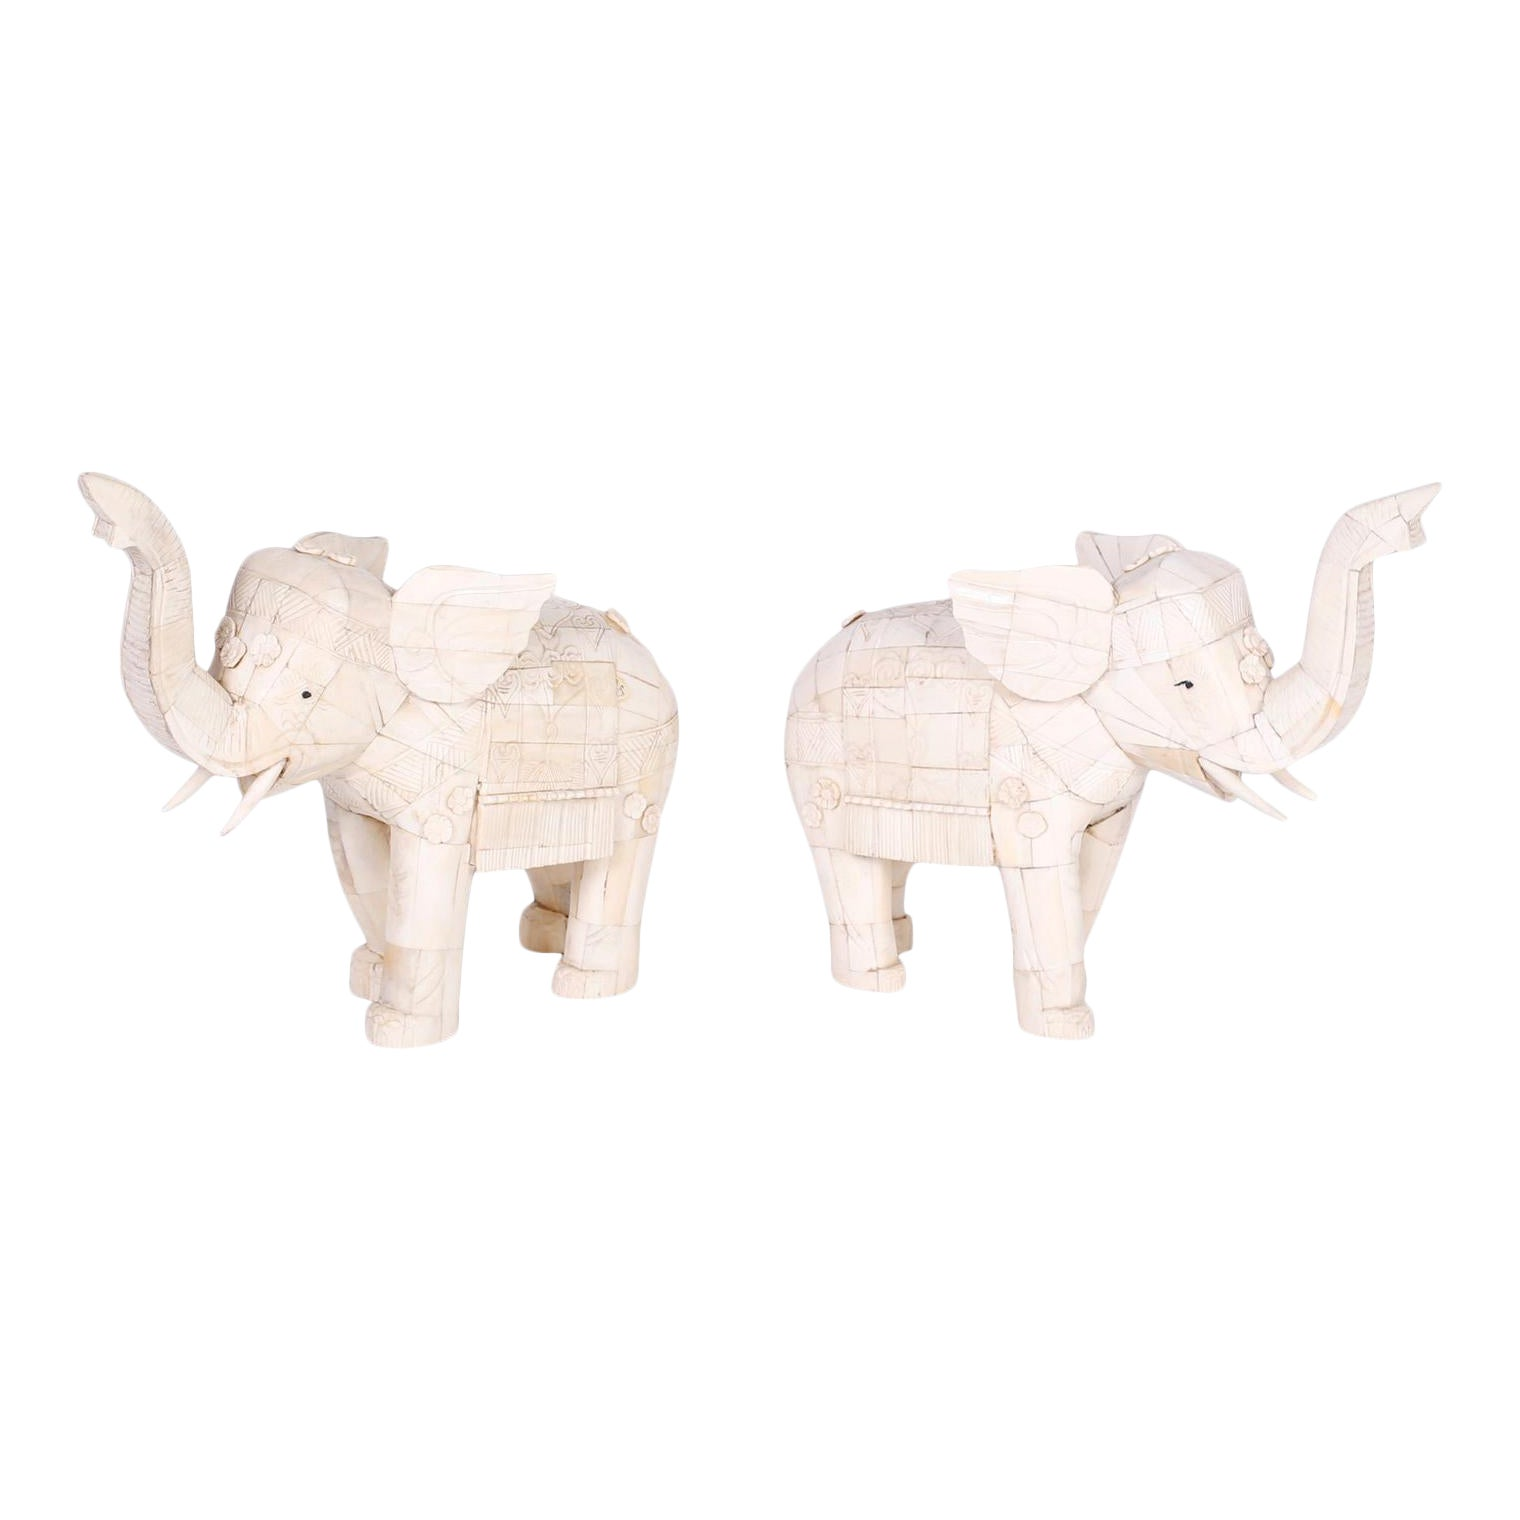 Chinese Carved Bone Elephants A Pair Chairish